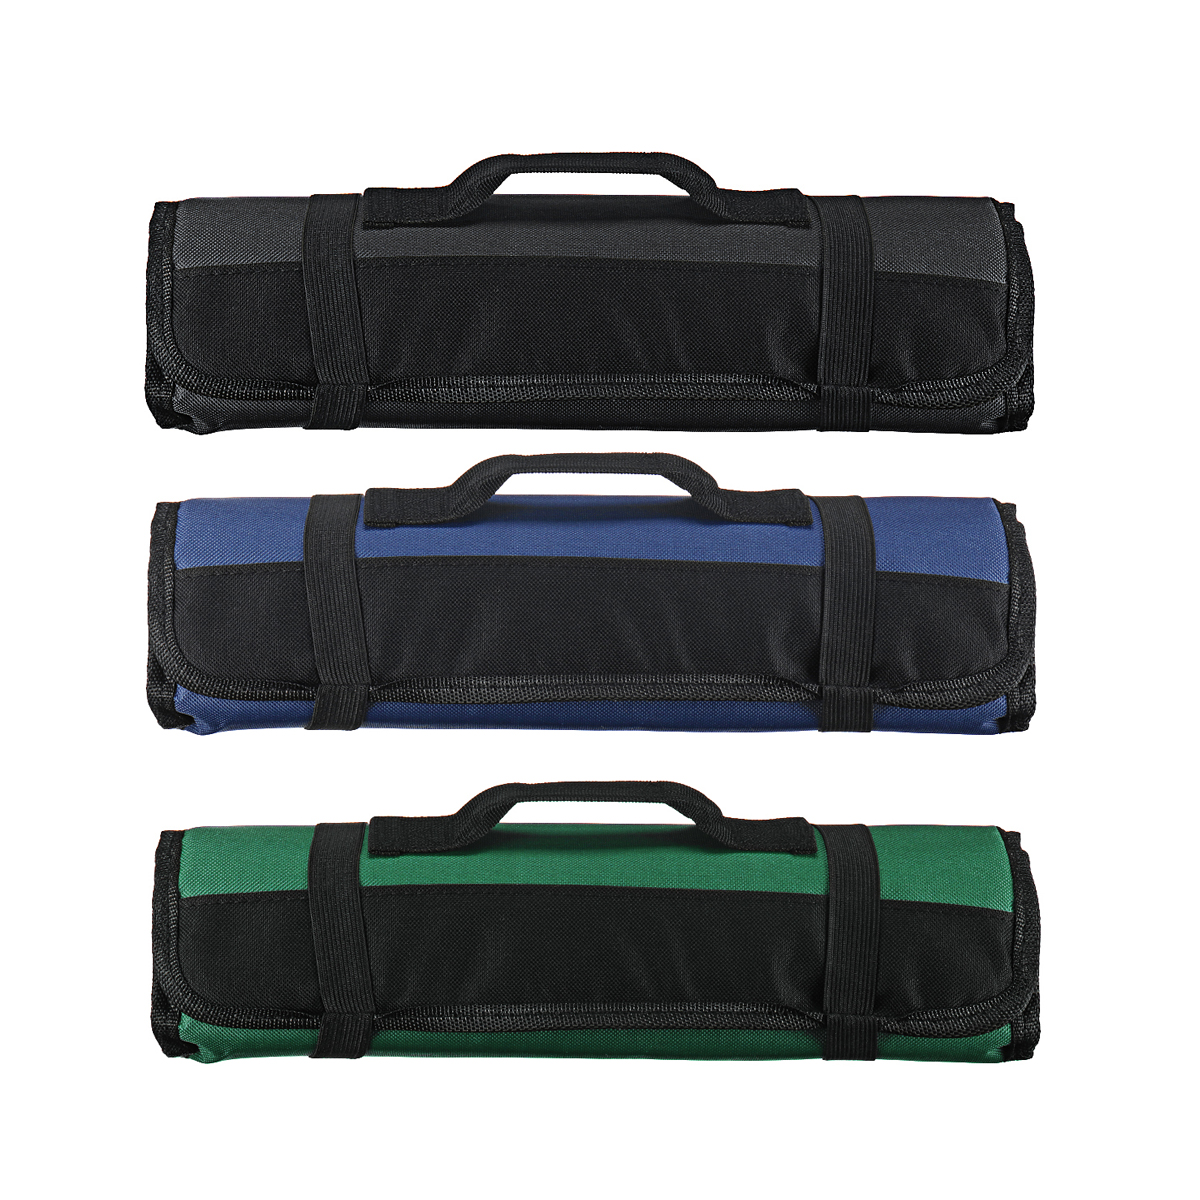 Knife-Bag Roll-Bag Durable-Storage Chef 22-Pockets Choice Kitchen Black Cooking Portable